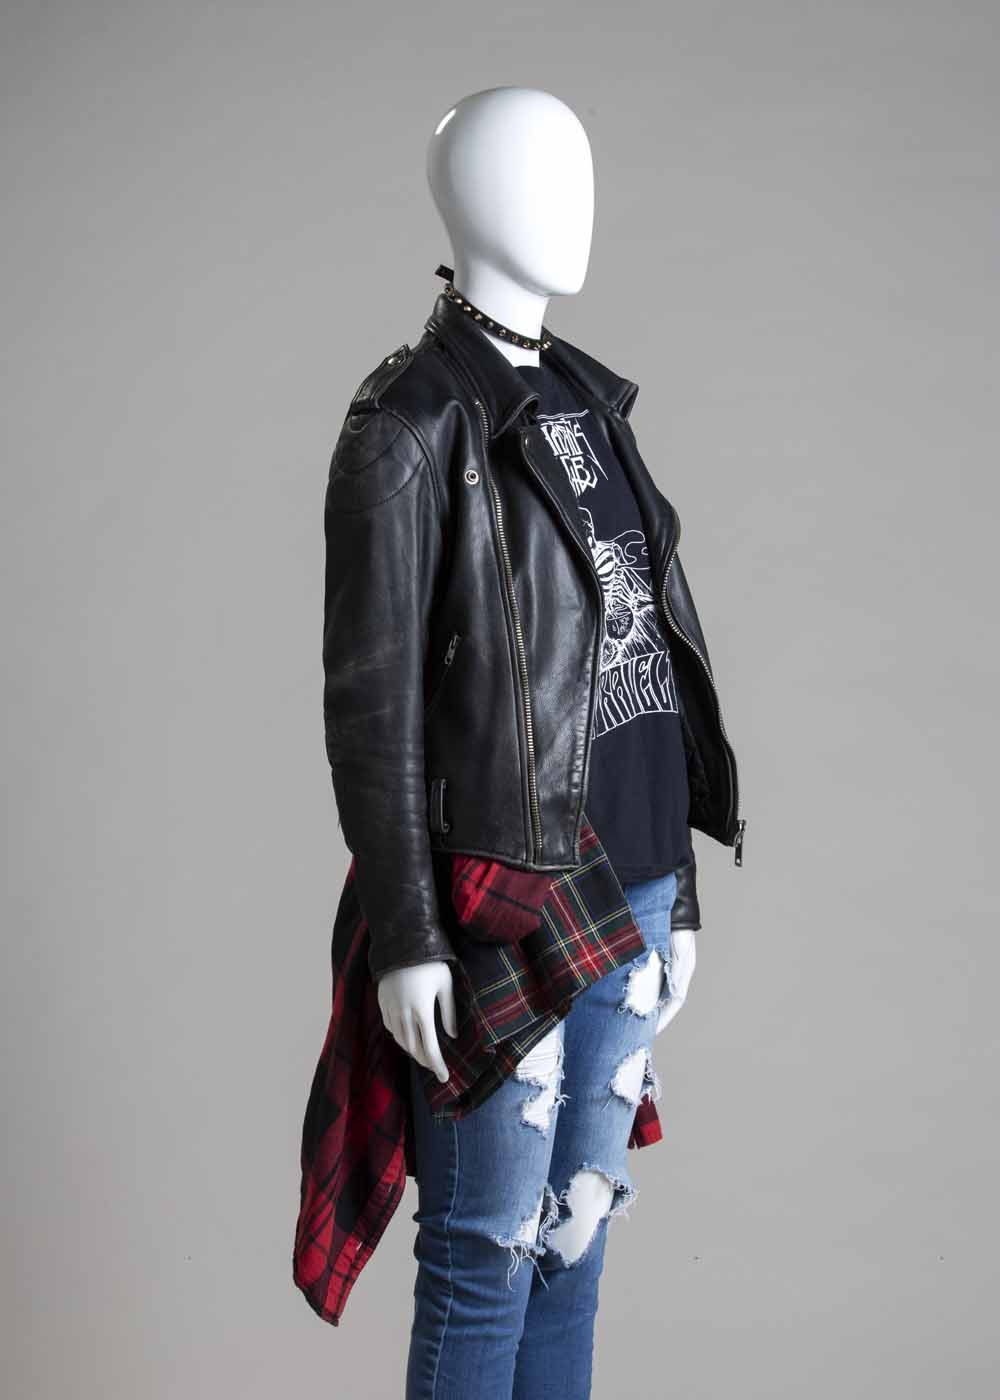 Punk Style: Articles of Interest #6 - 99% Invisible